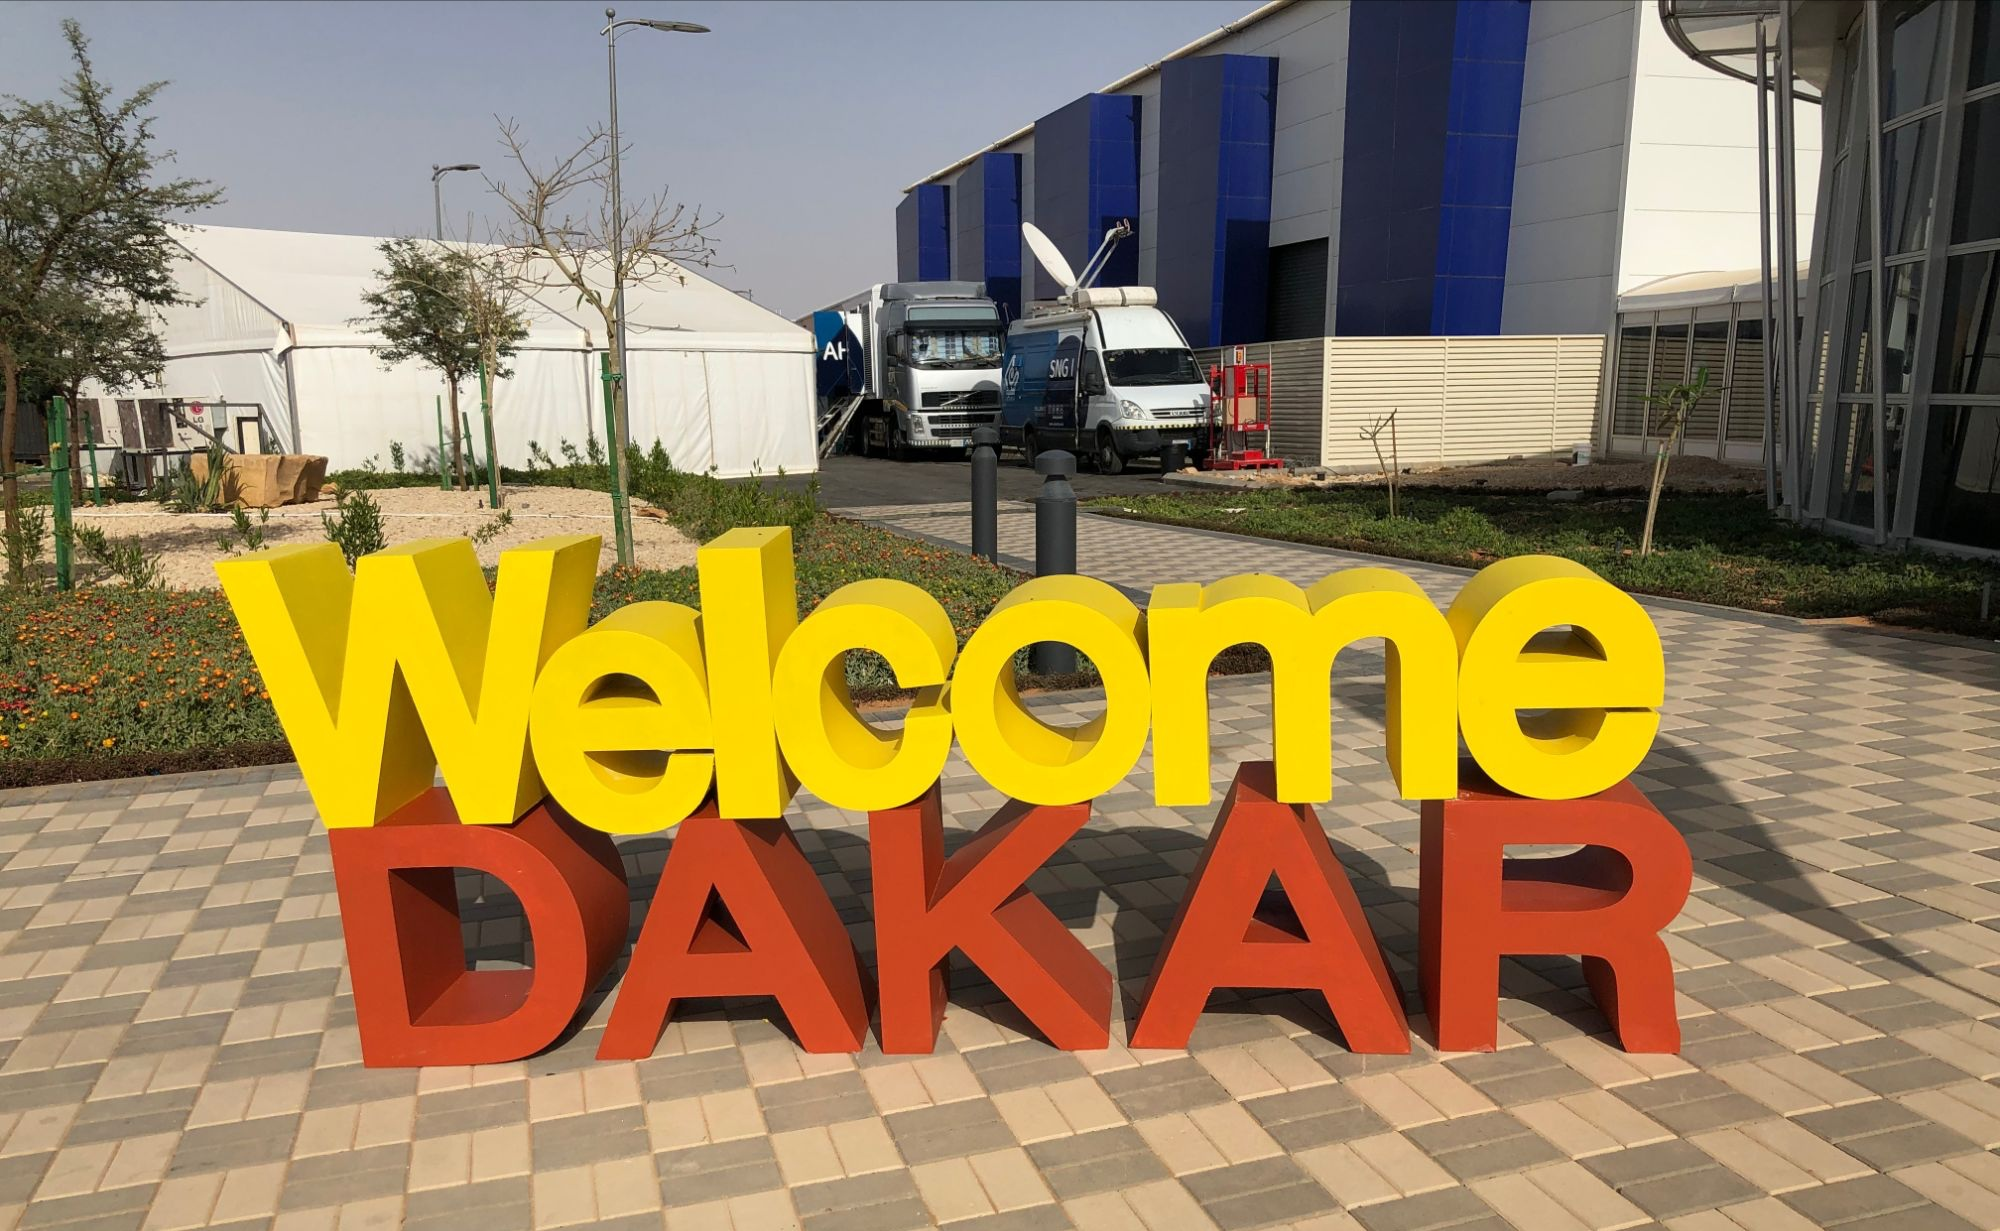 International racers arrive in Jeddah to take part in Dakar -Saudi rally 2021